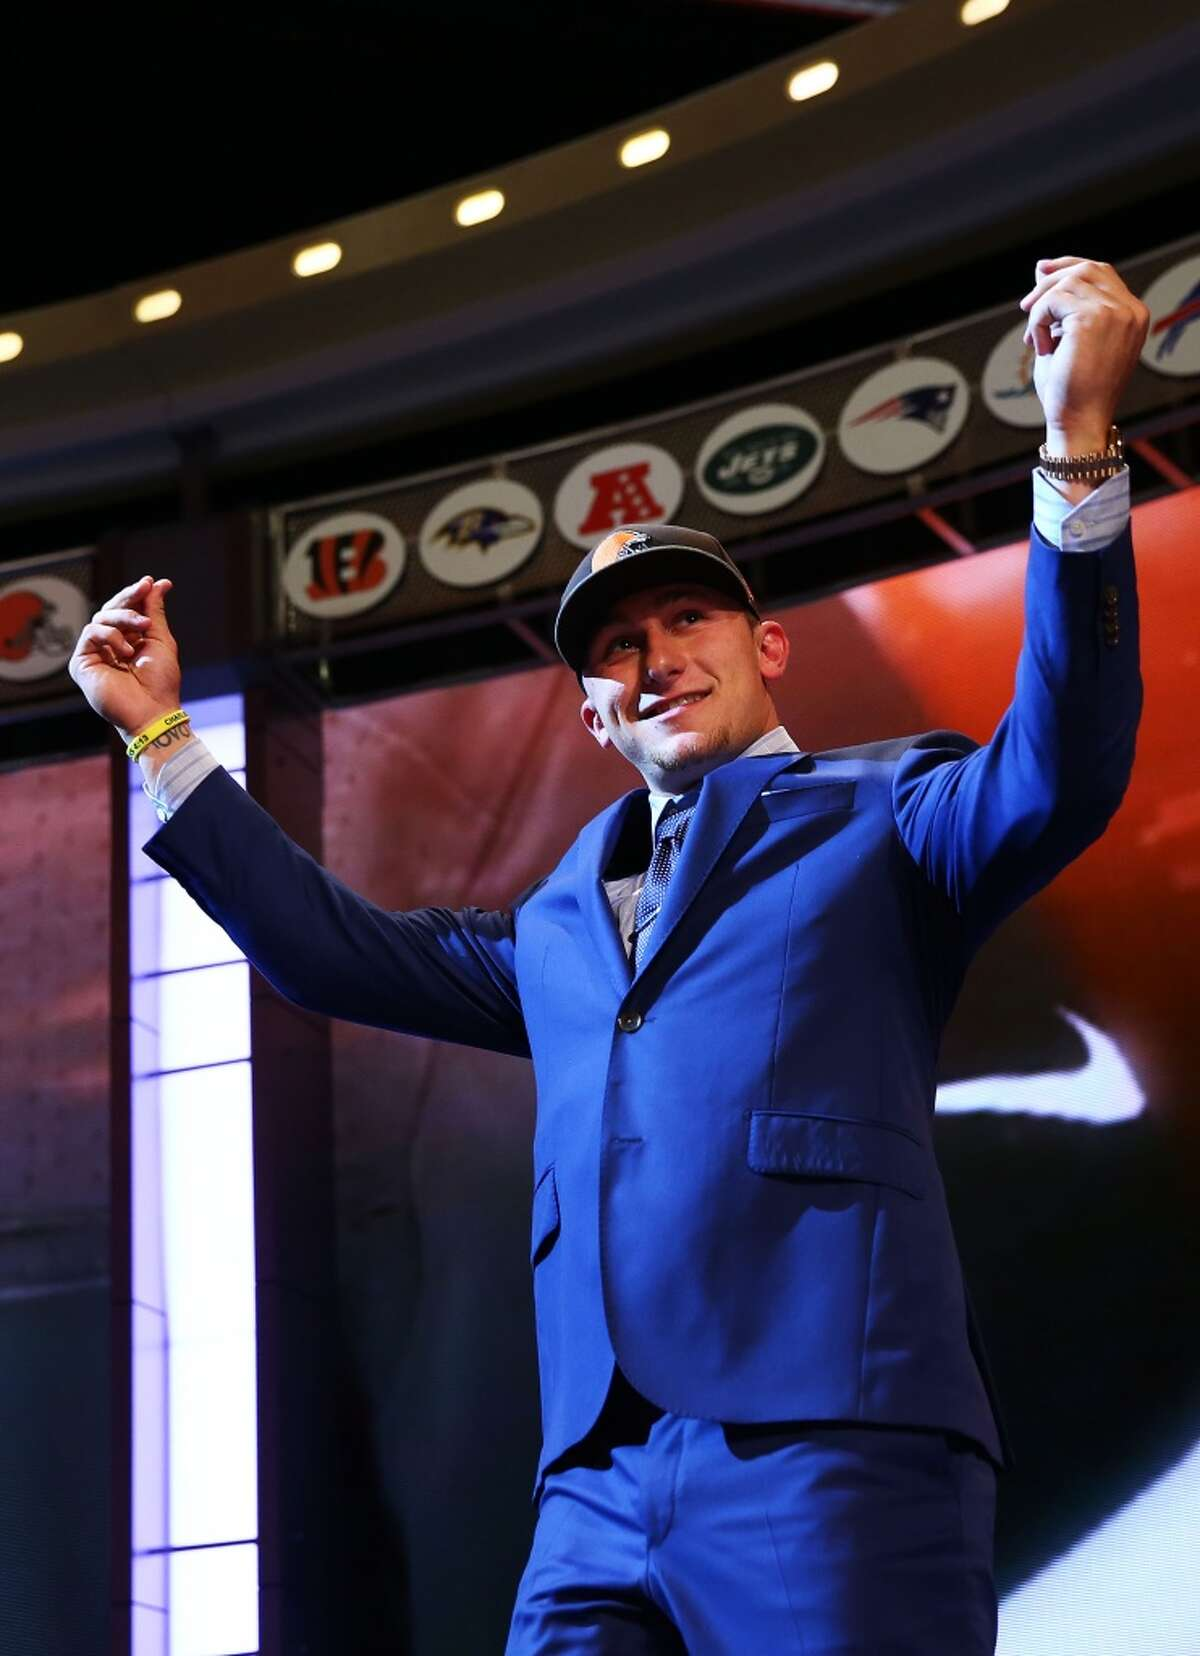 Johnny Manziel of the Texas A&M Aggies takes the stage after he was picked #22 overall by the Cleveland Browns during the first round of the 2014 NFL Draft at Radio City Music Hall on May 8, 2014 in New York City.